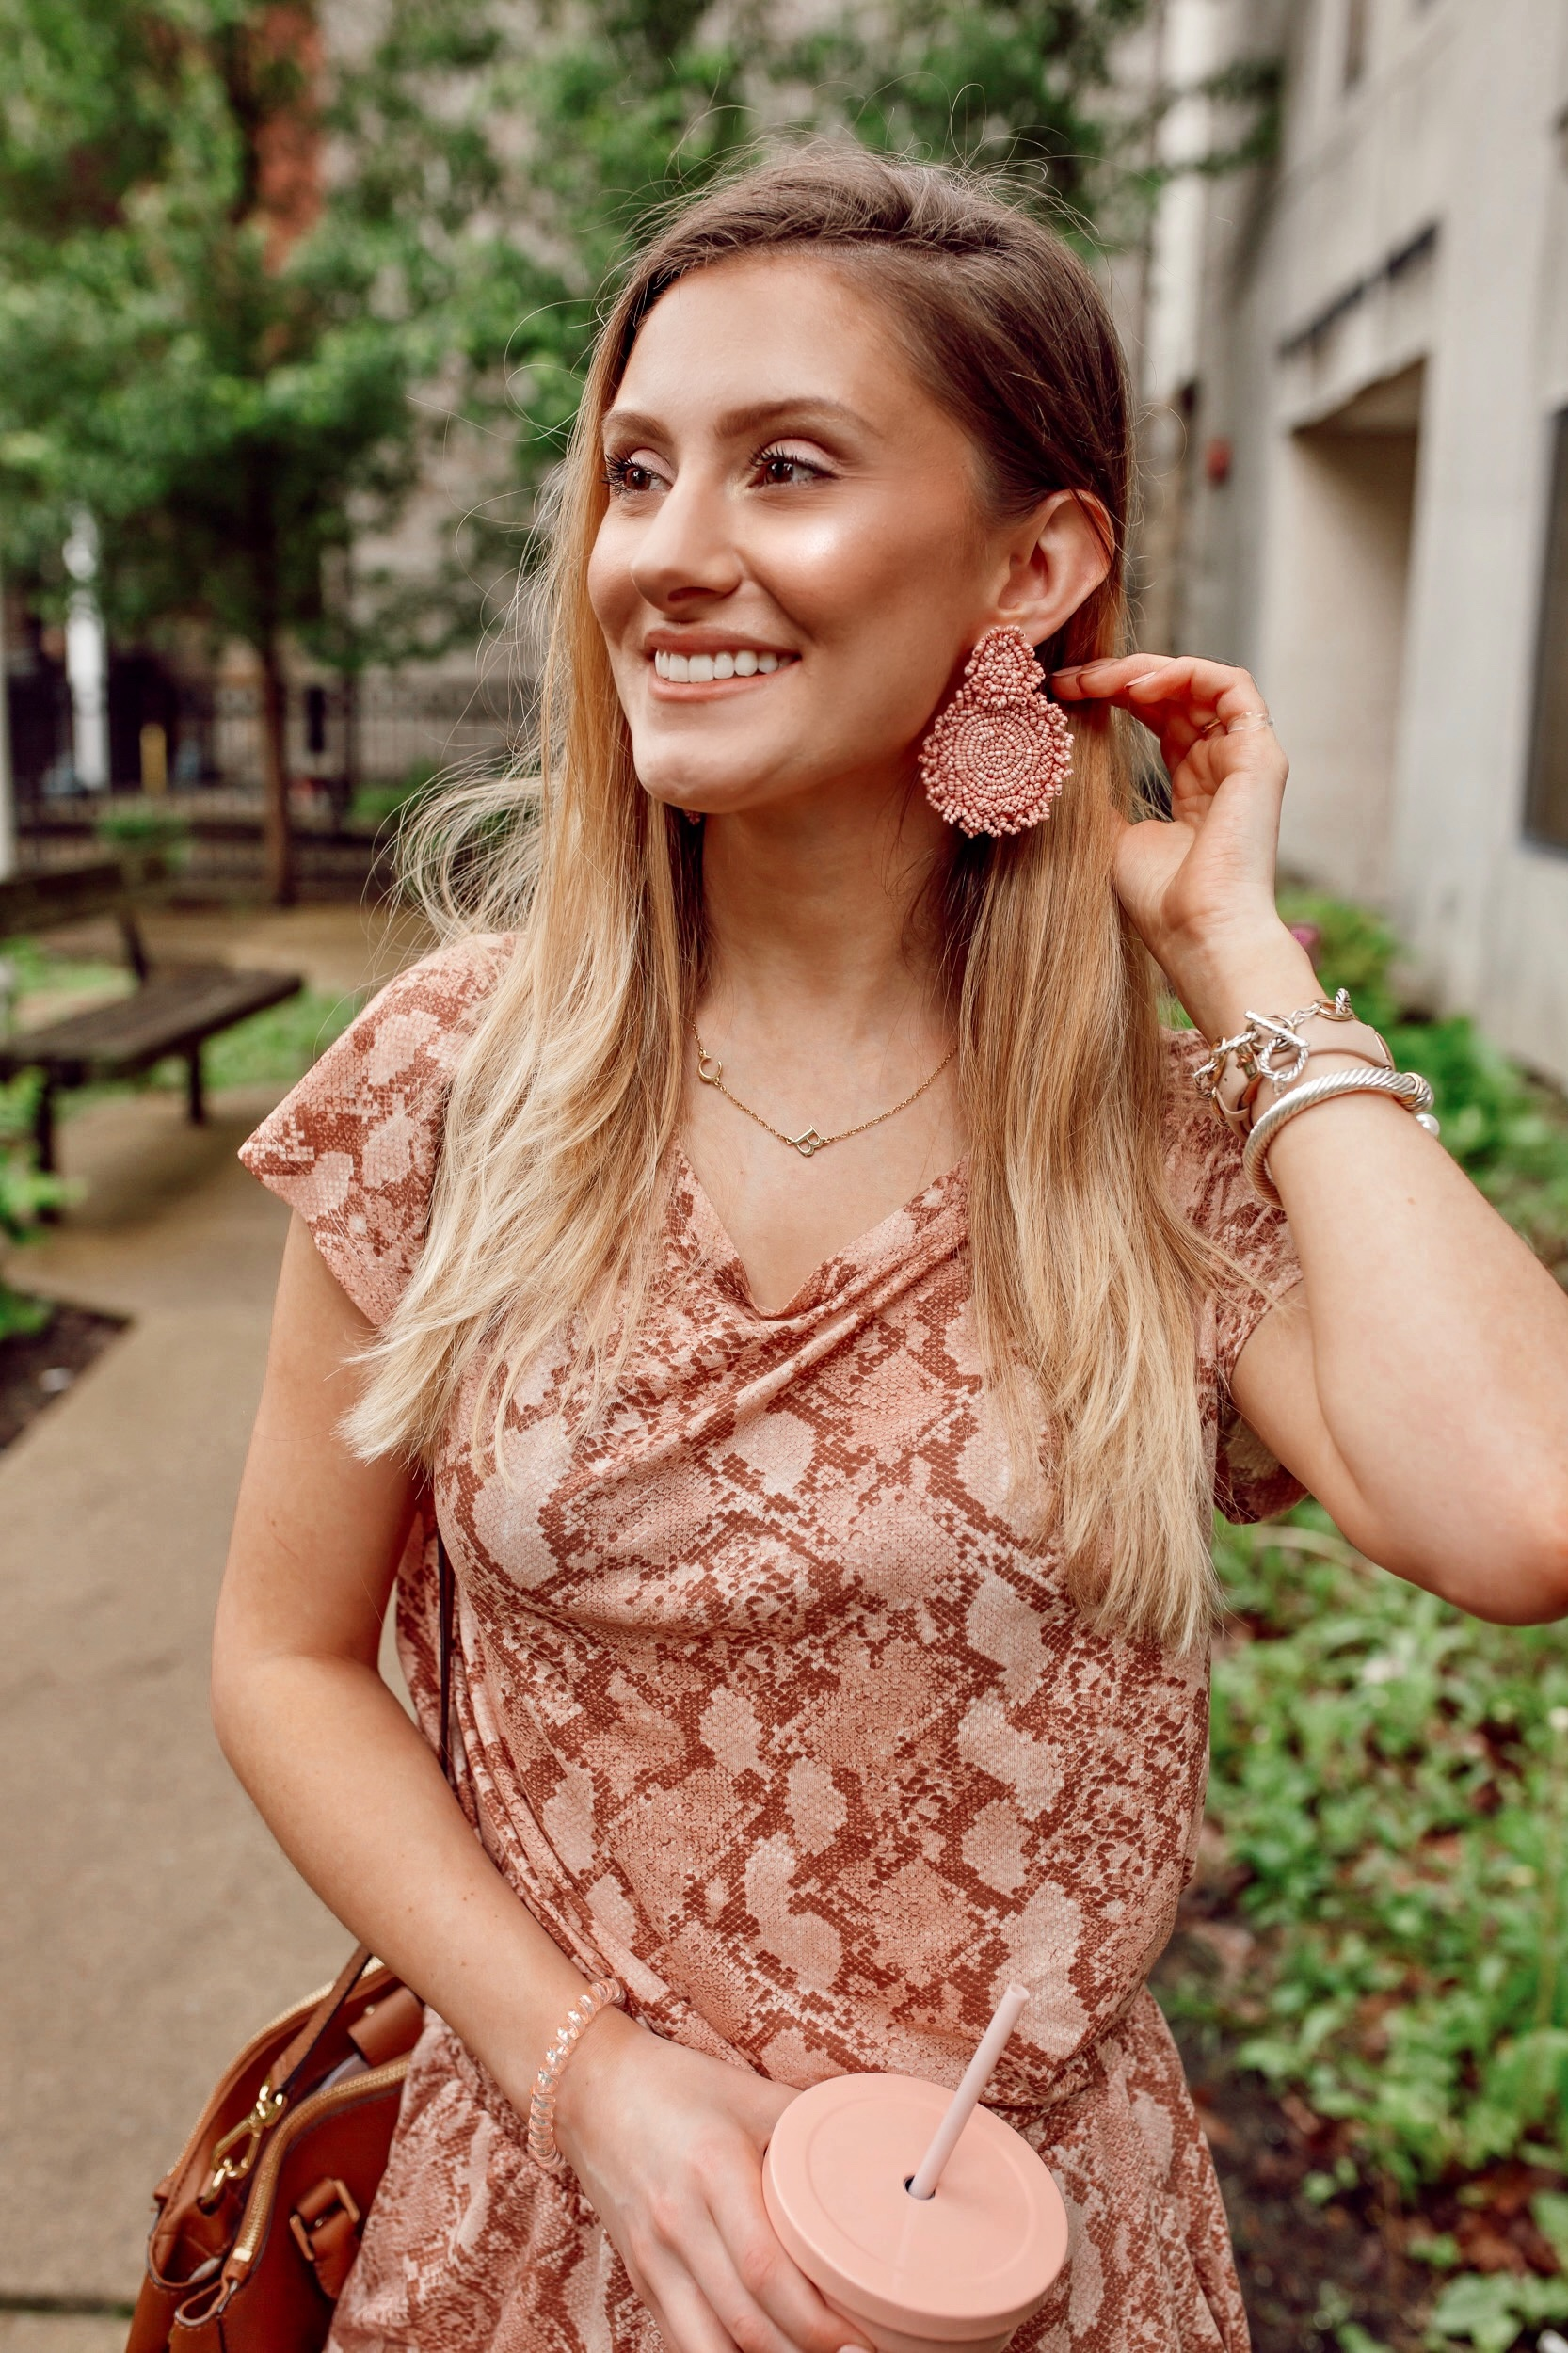 About North Carolina fashion and lifestyle blogger Jessica Linn.